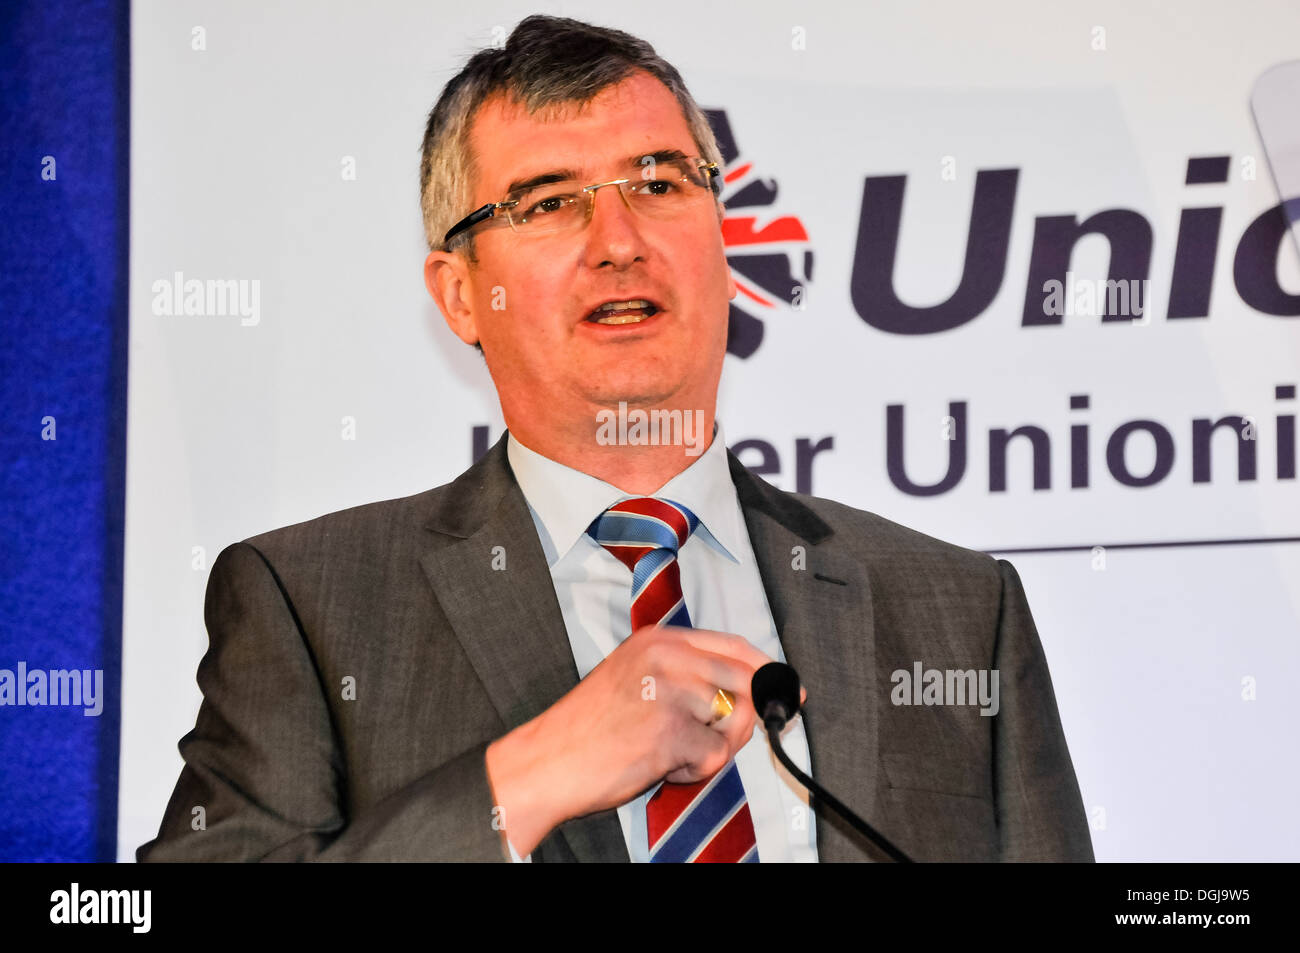 Belfast, Northern Ireland, UK. 19th Oct 2013 - Tom Elliott MLA speaks at the 2013 Ulster Unionist Party conference - Stock Image